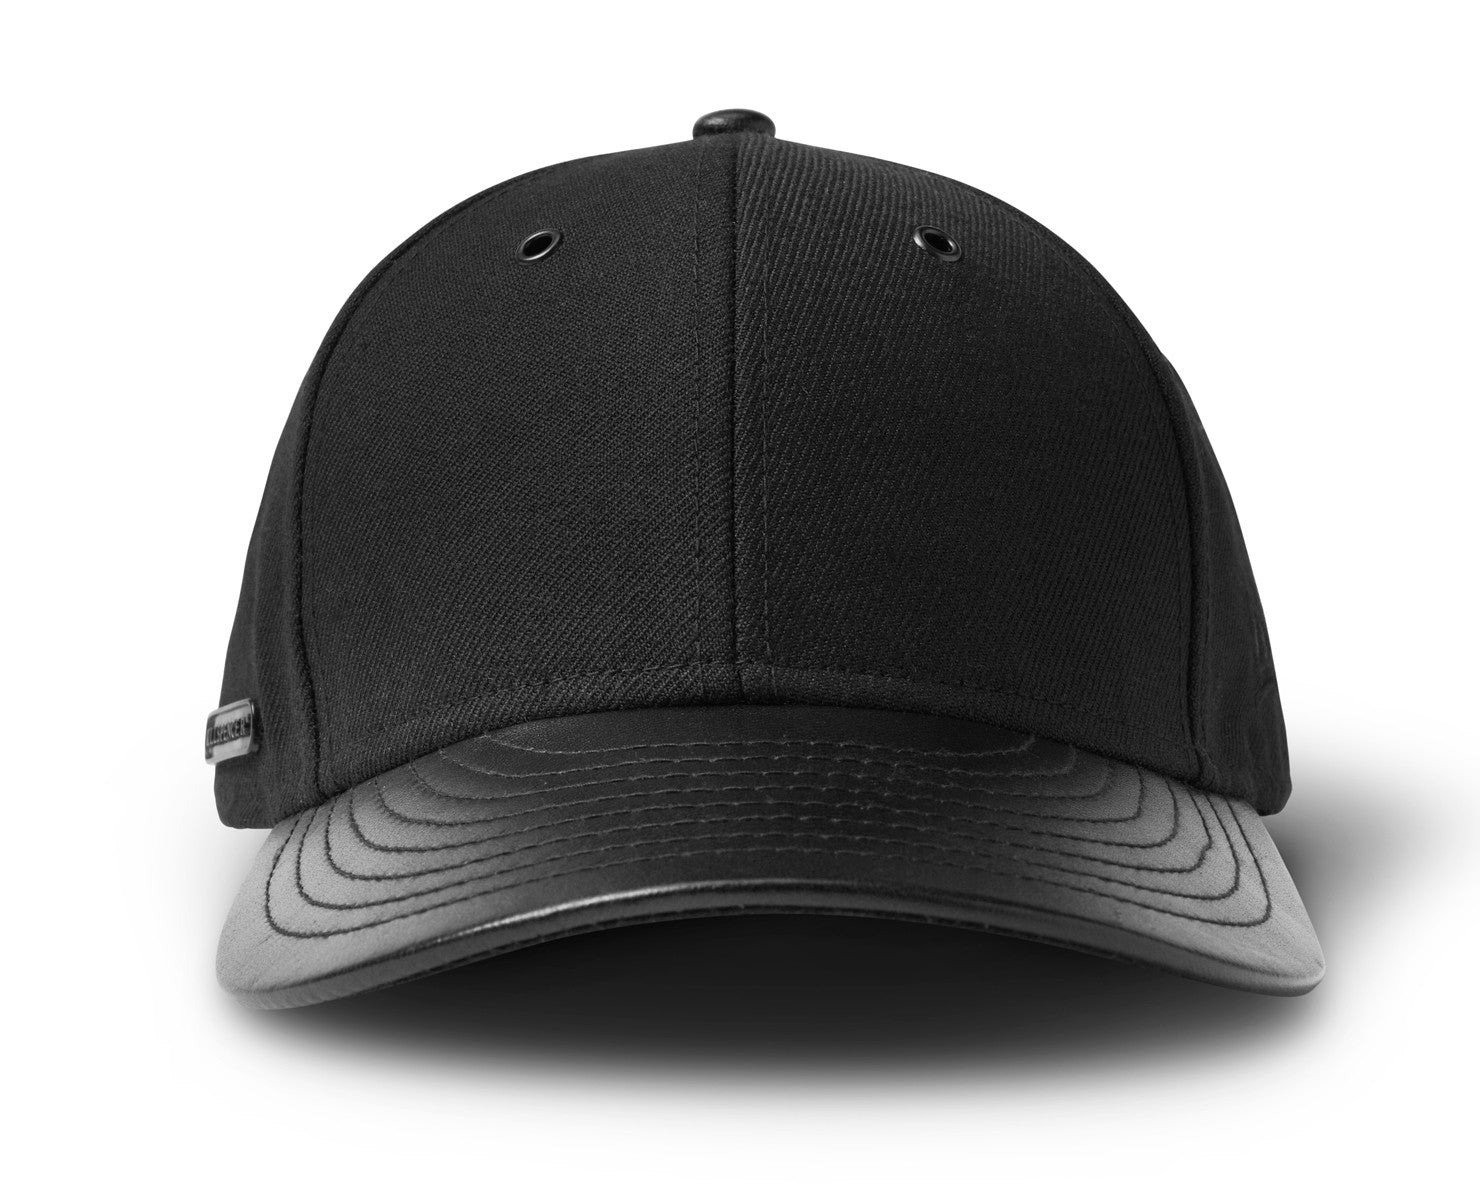 SNAPBACK CAP | KILLSPENCER® - Black Leather